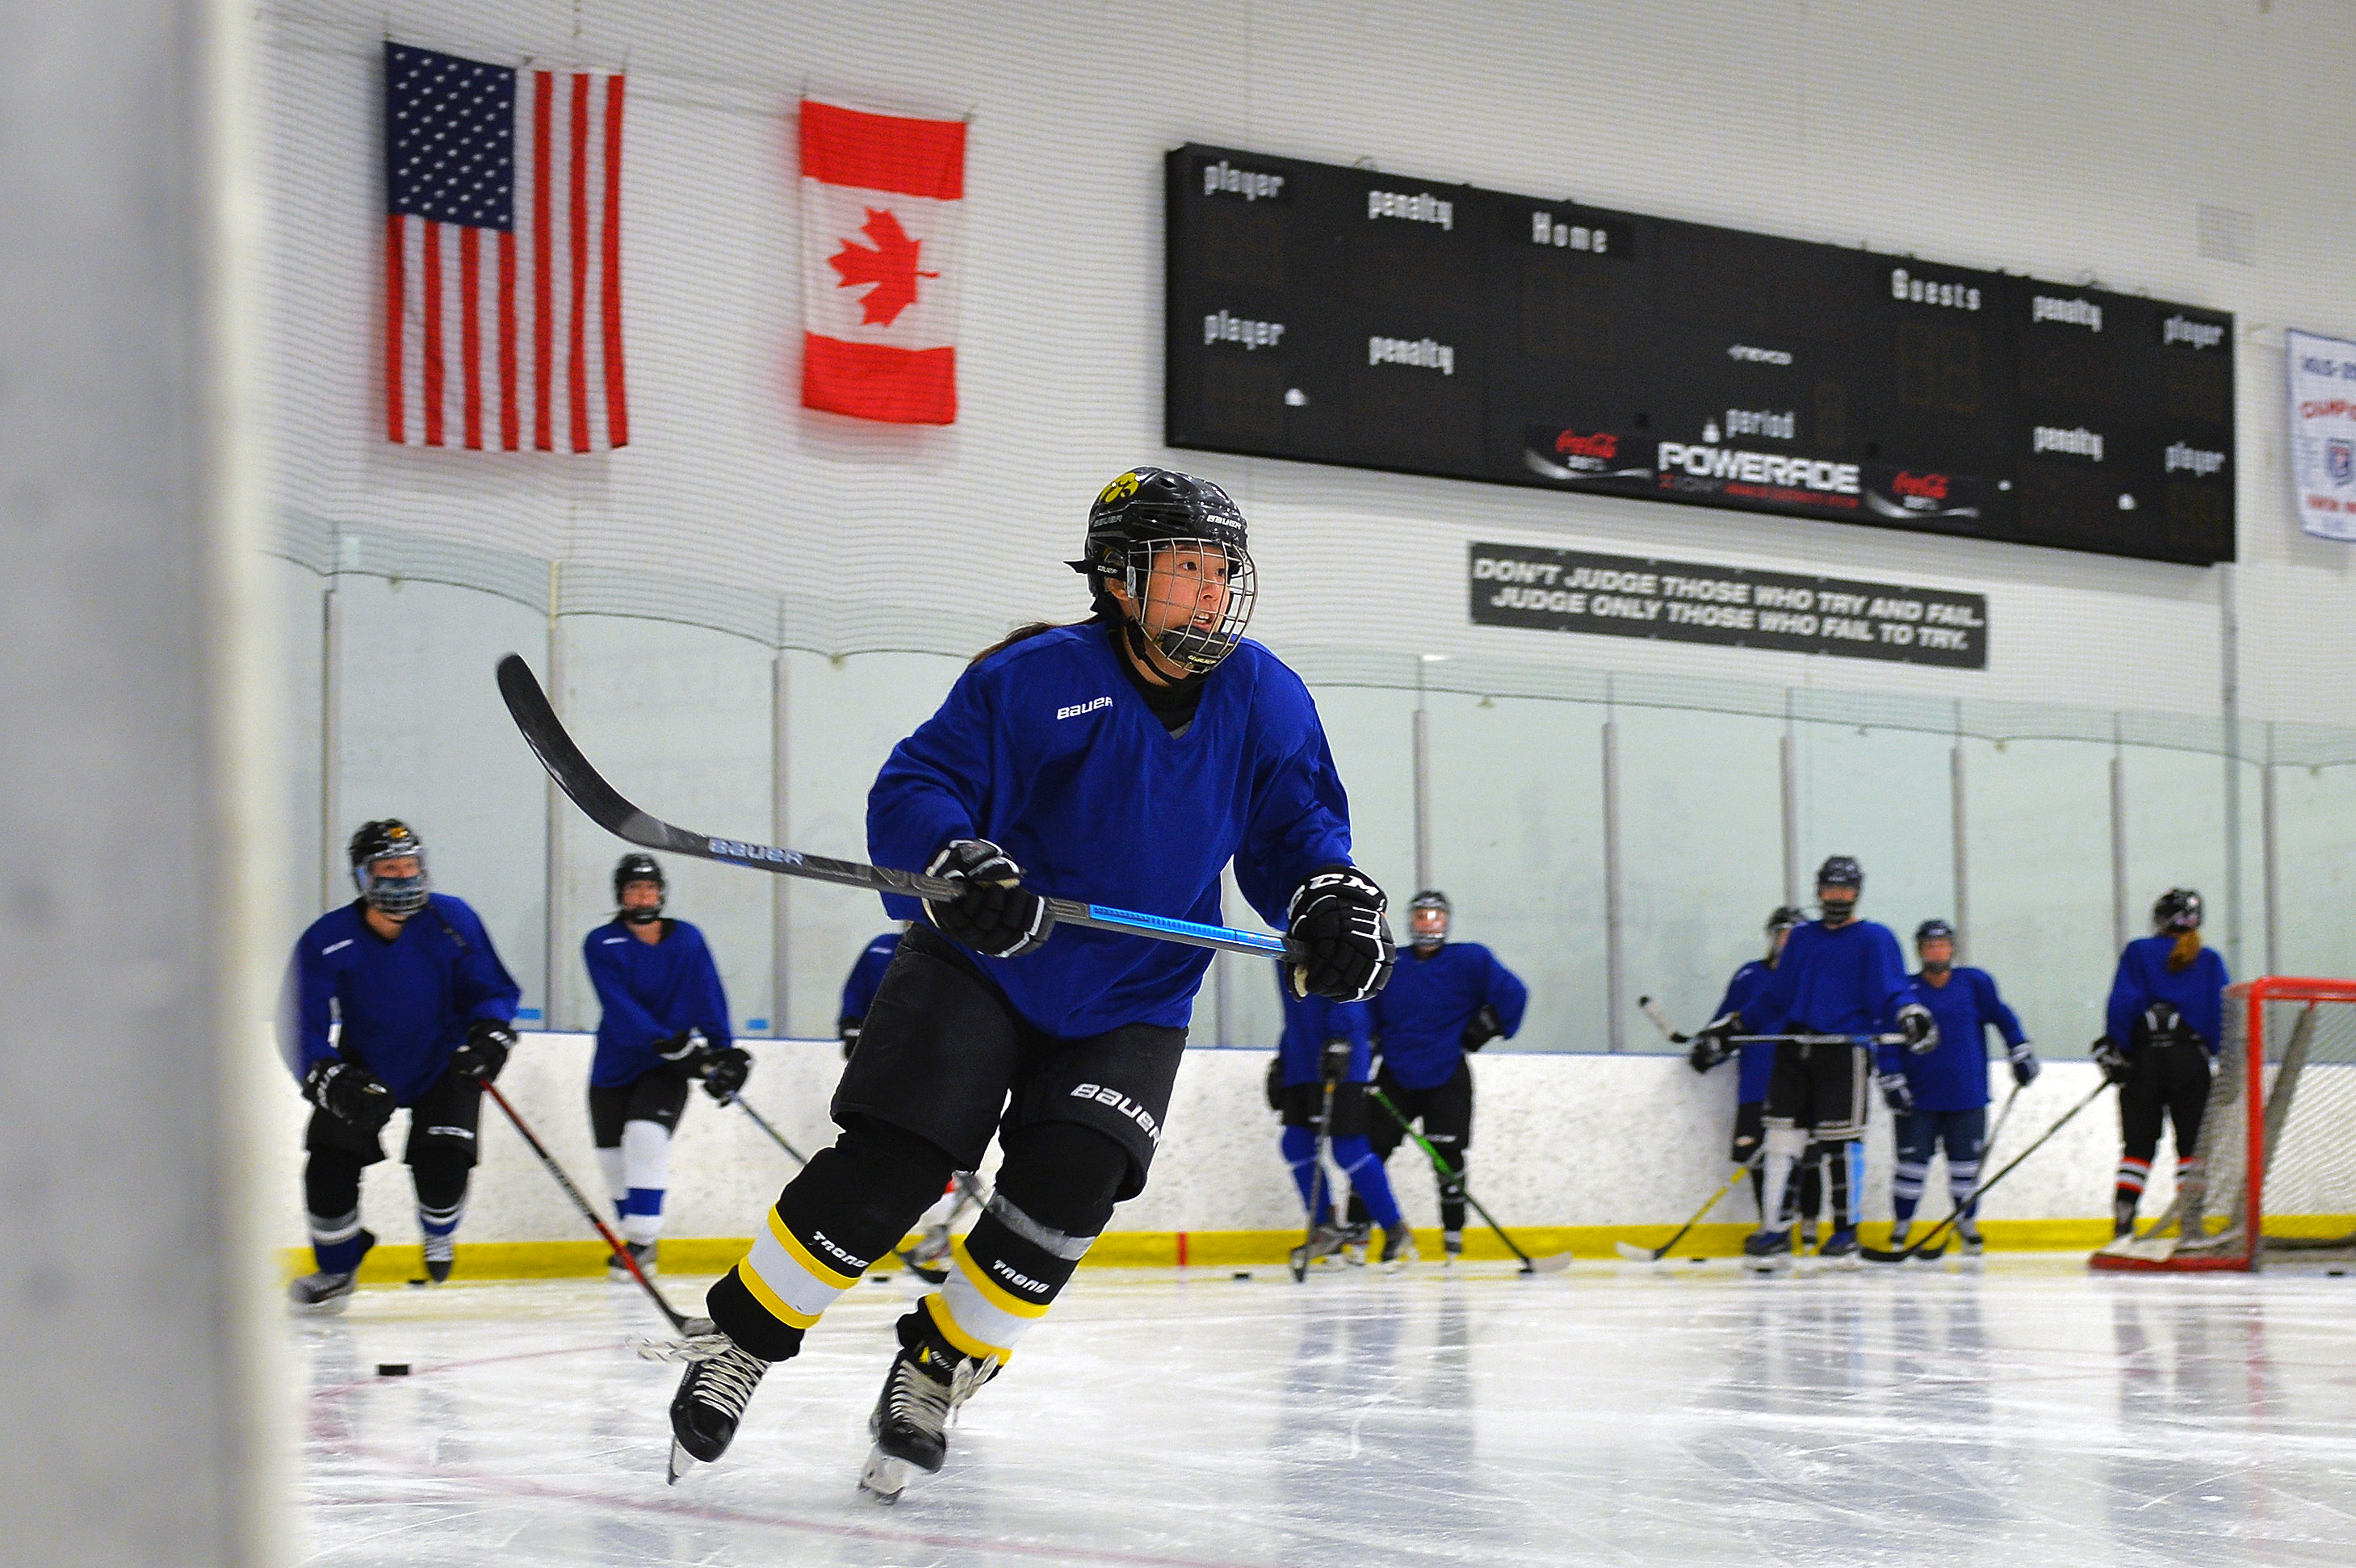 Jaslyn Lim of the Chicago North Stars, an elite women's hockey team, practices with the team at Johnny's IceHouse West.